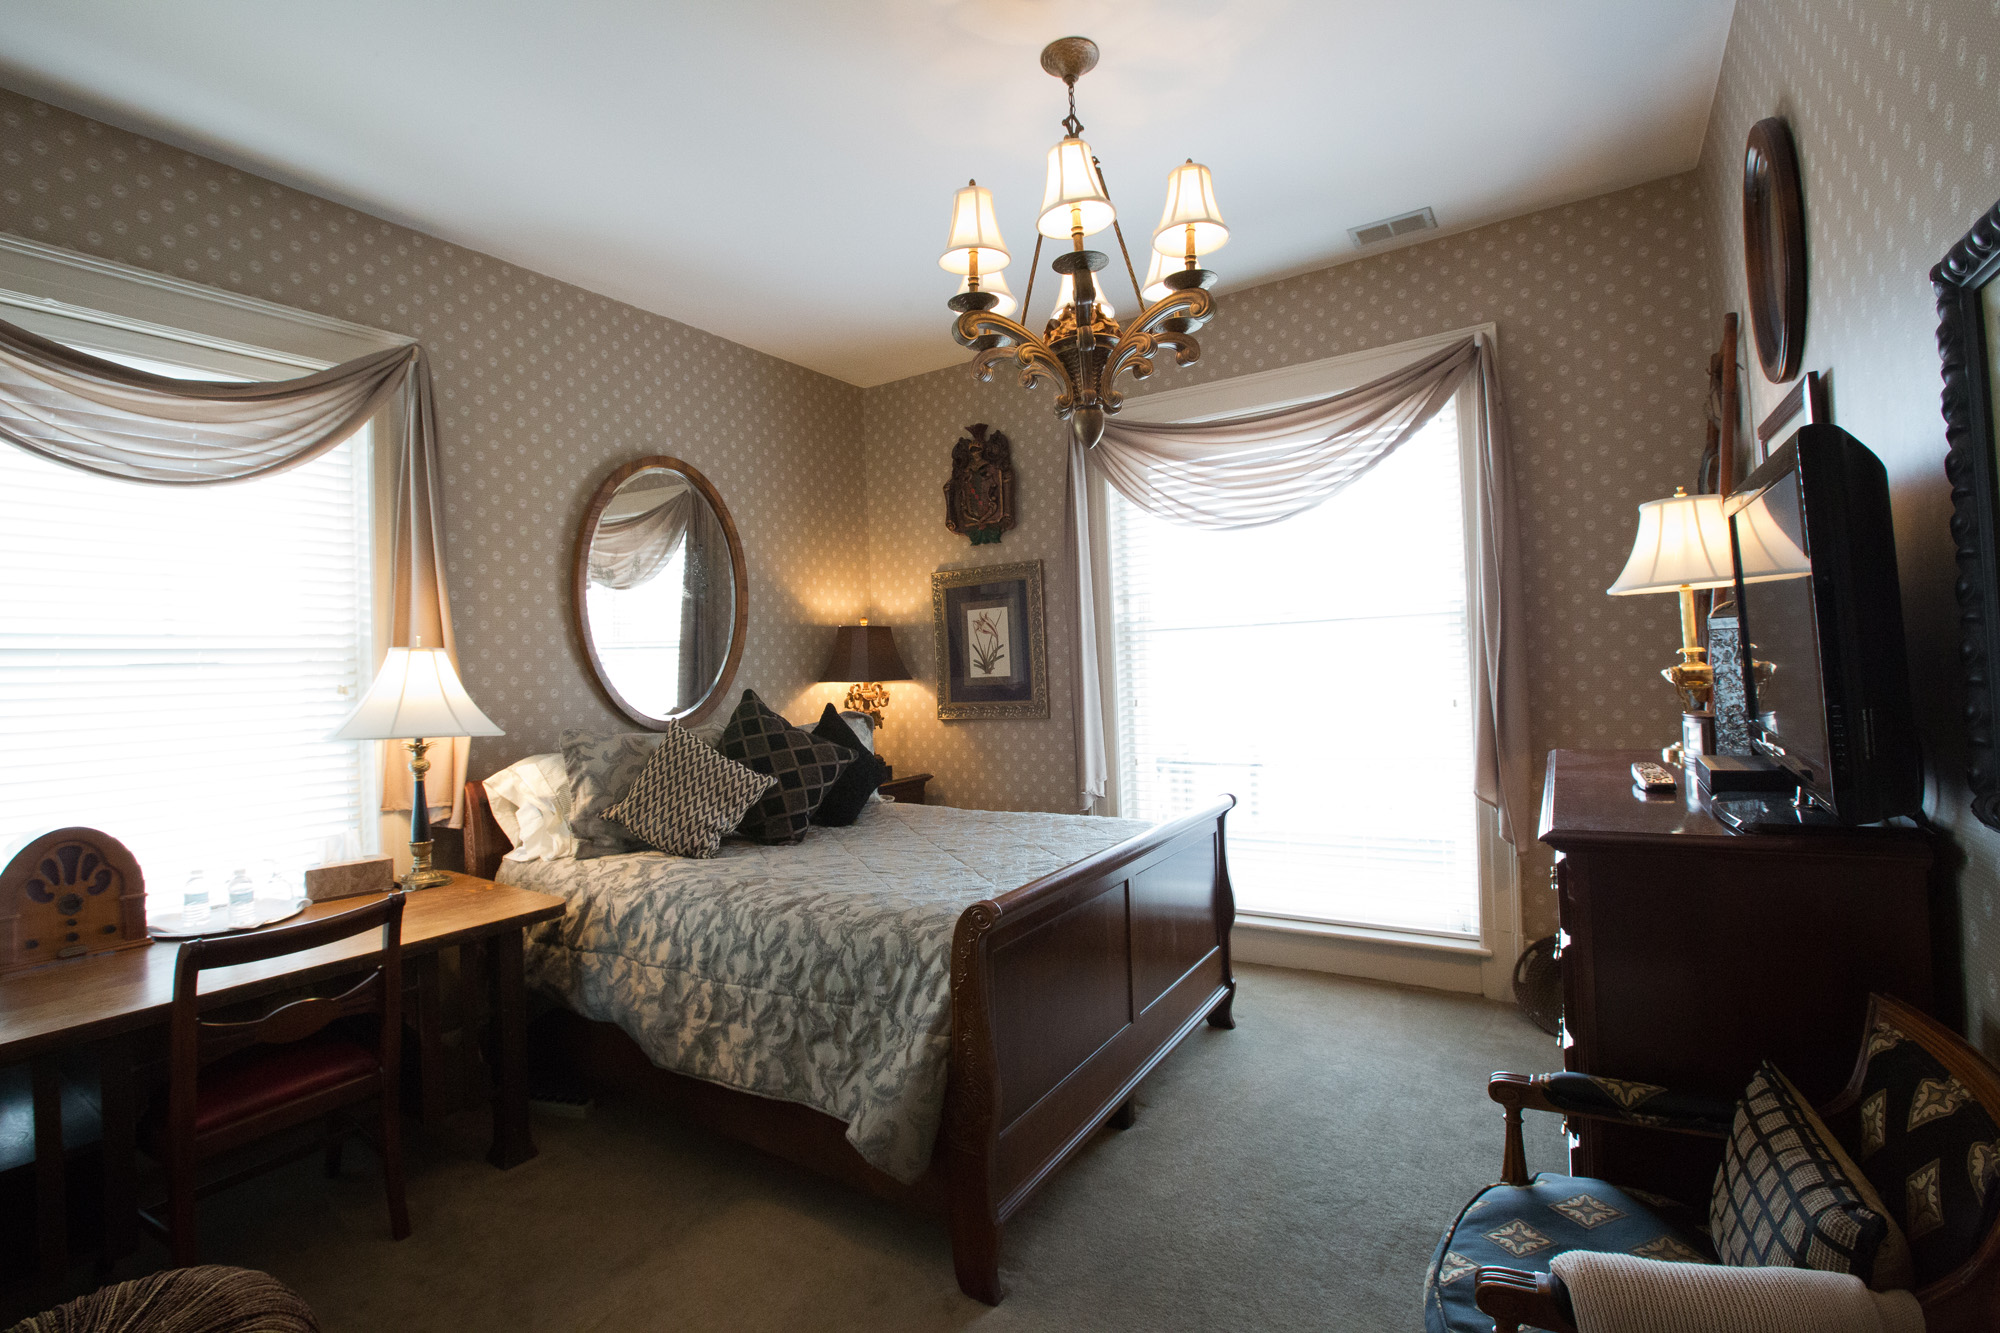 Room 4 - Single Queen Bedroom - $140 per night